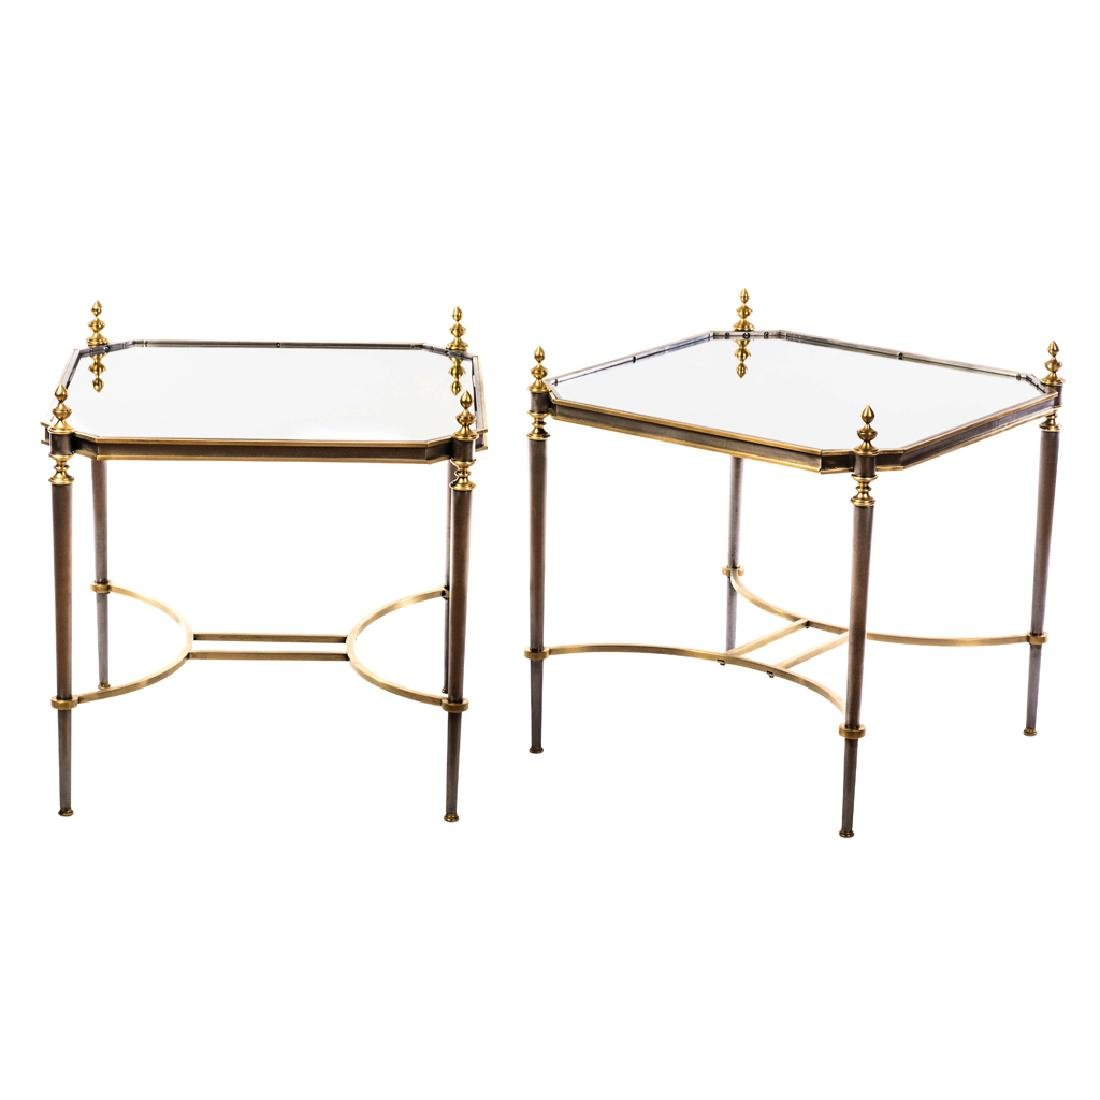 Pair of iron and bronze side tables with quadrangular